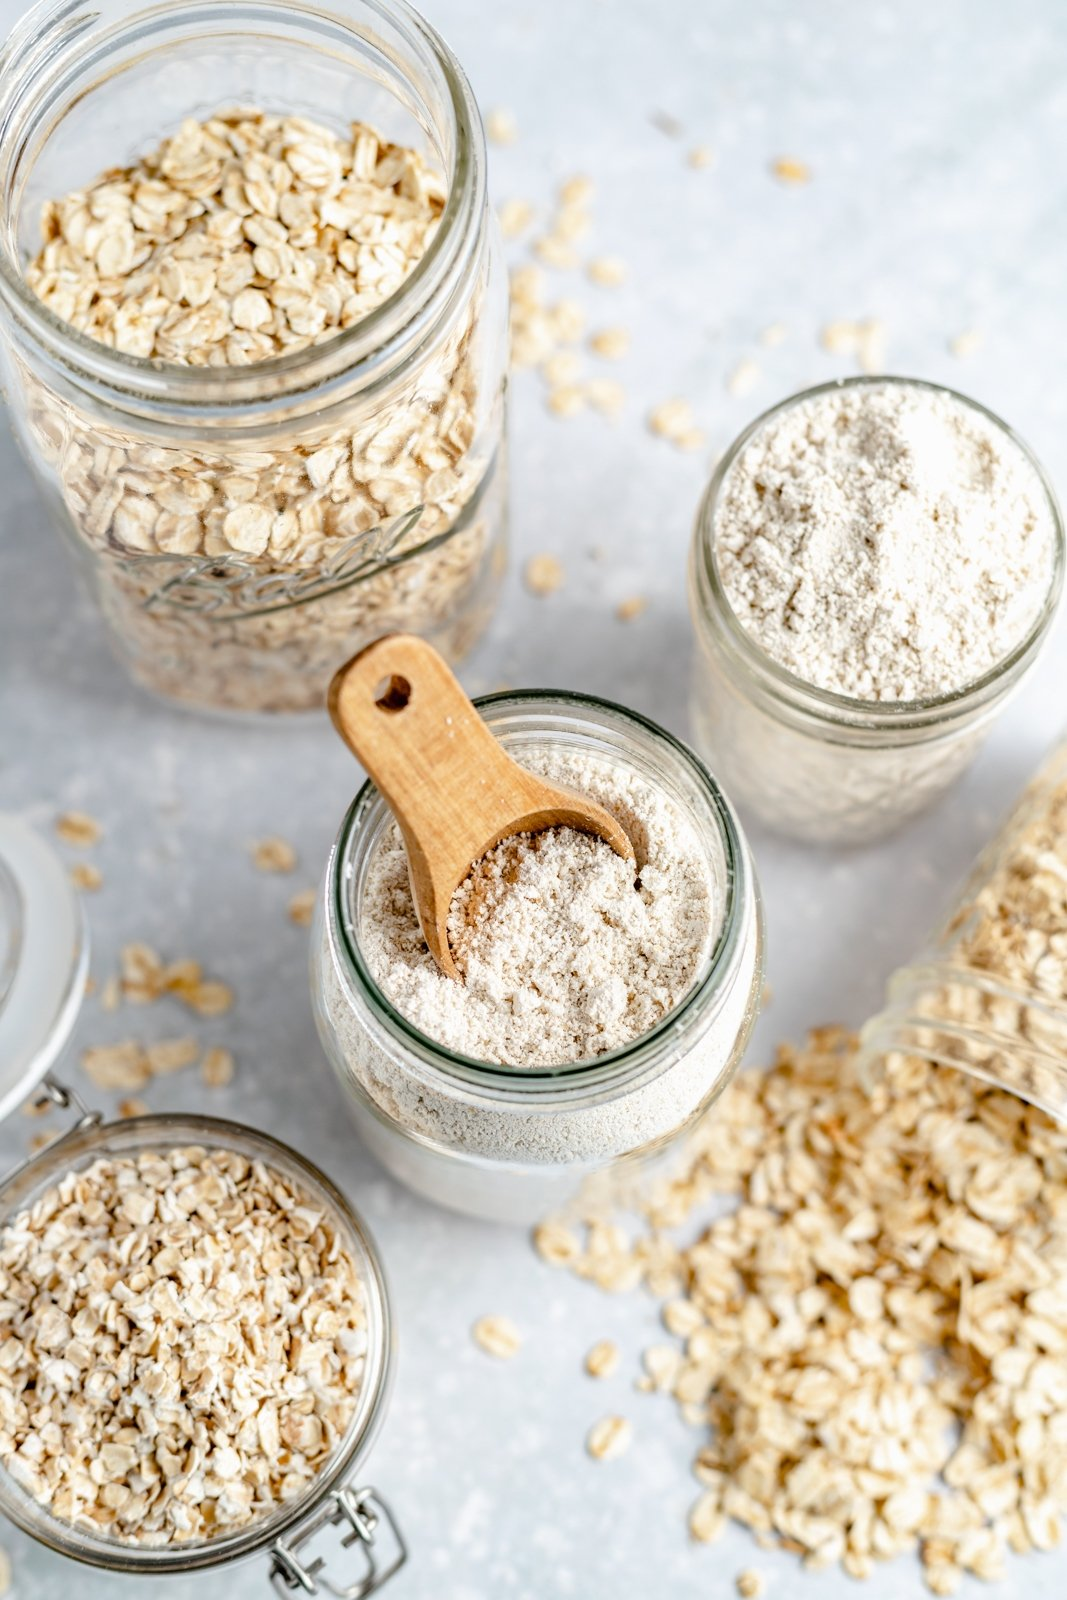 jars of oats and oat flour